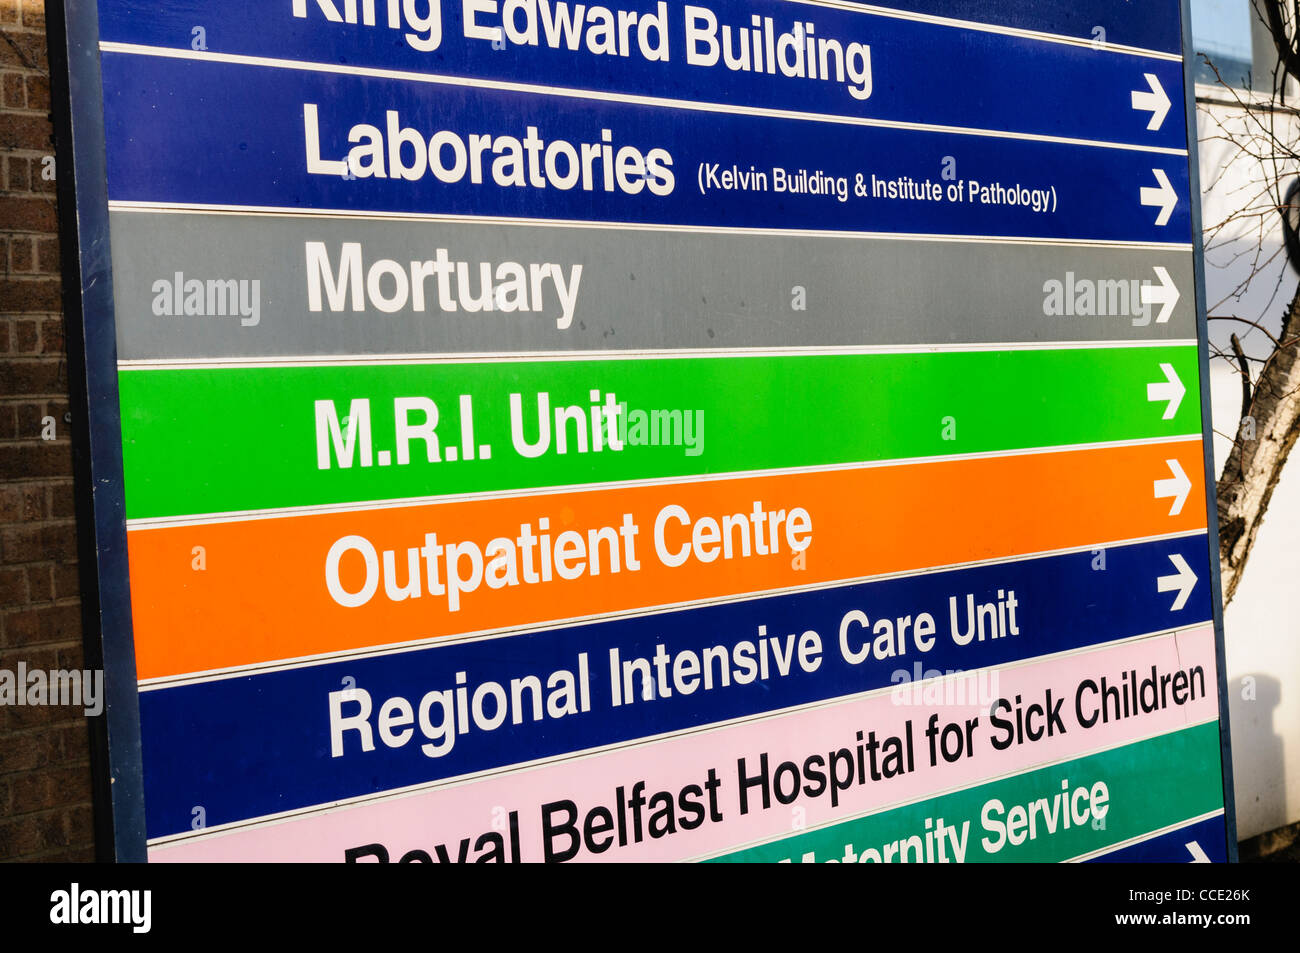 Signs at a Royal Victoria Hospital Belfast for Laboratories, Mortuary, MRI Unit, Outpatient Centre,Regional Intensive - Stock Image